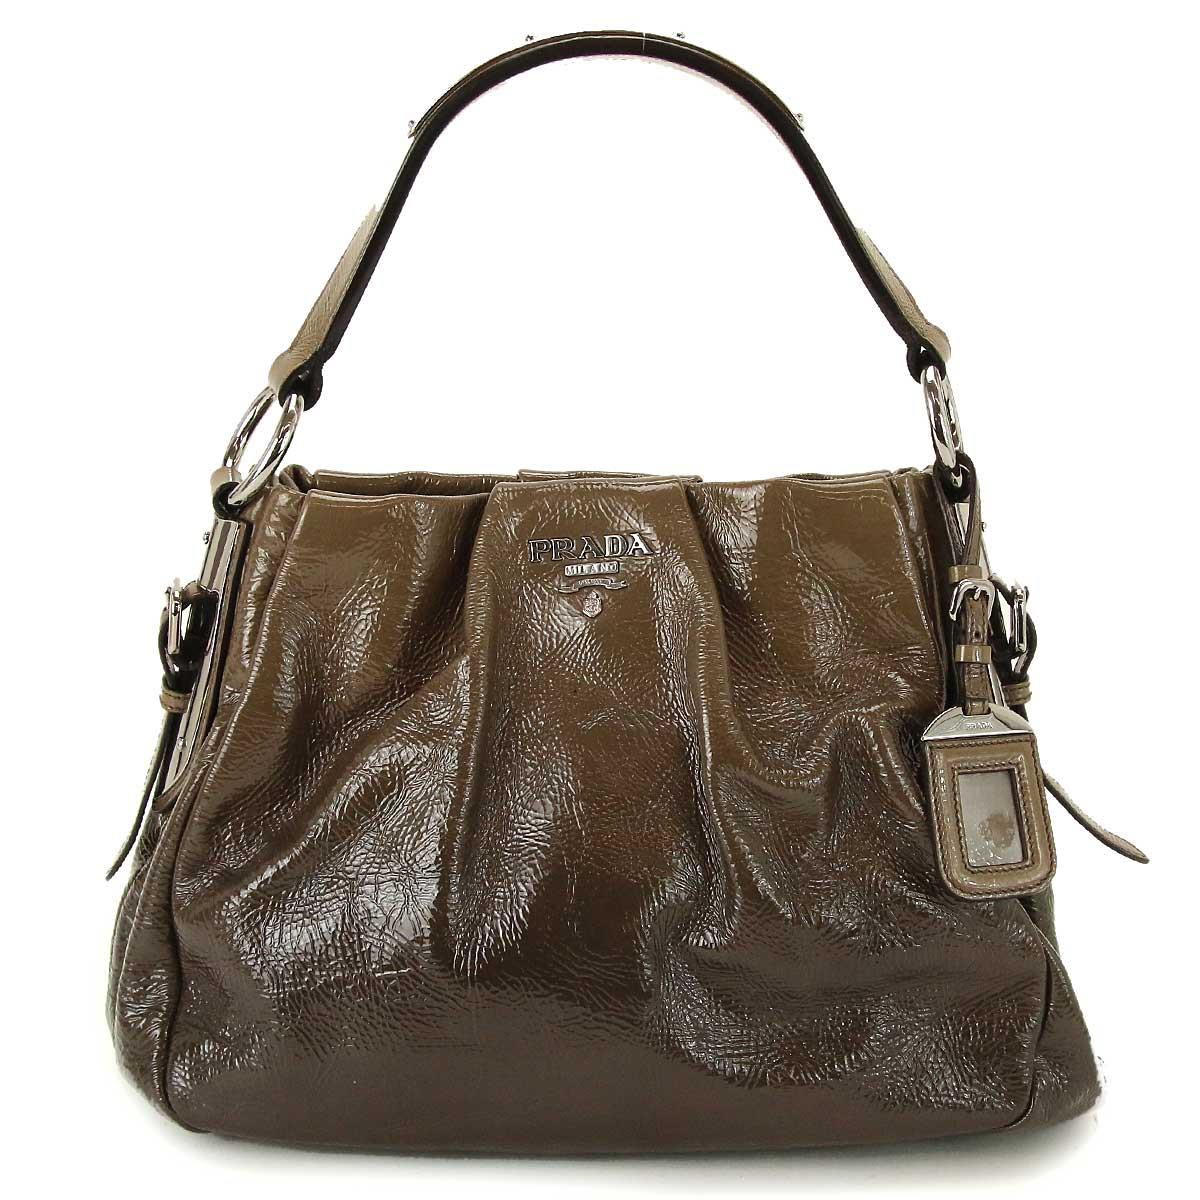 fd09983d25538c Prada Purse Brown Thomas | Stanford Center for Opportunity Policy in ...